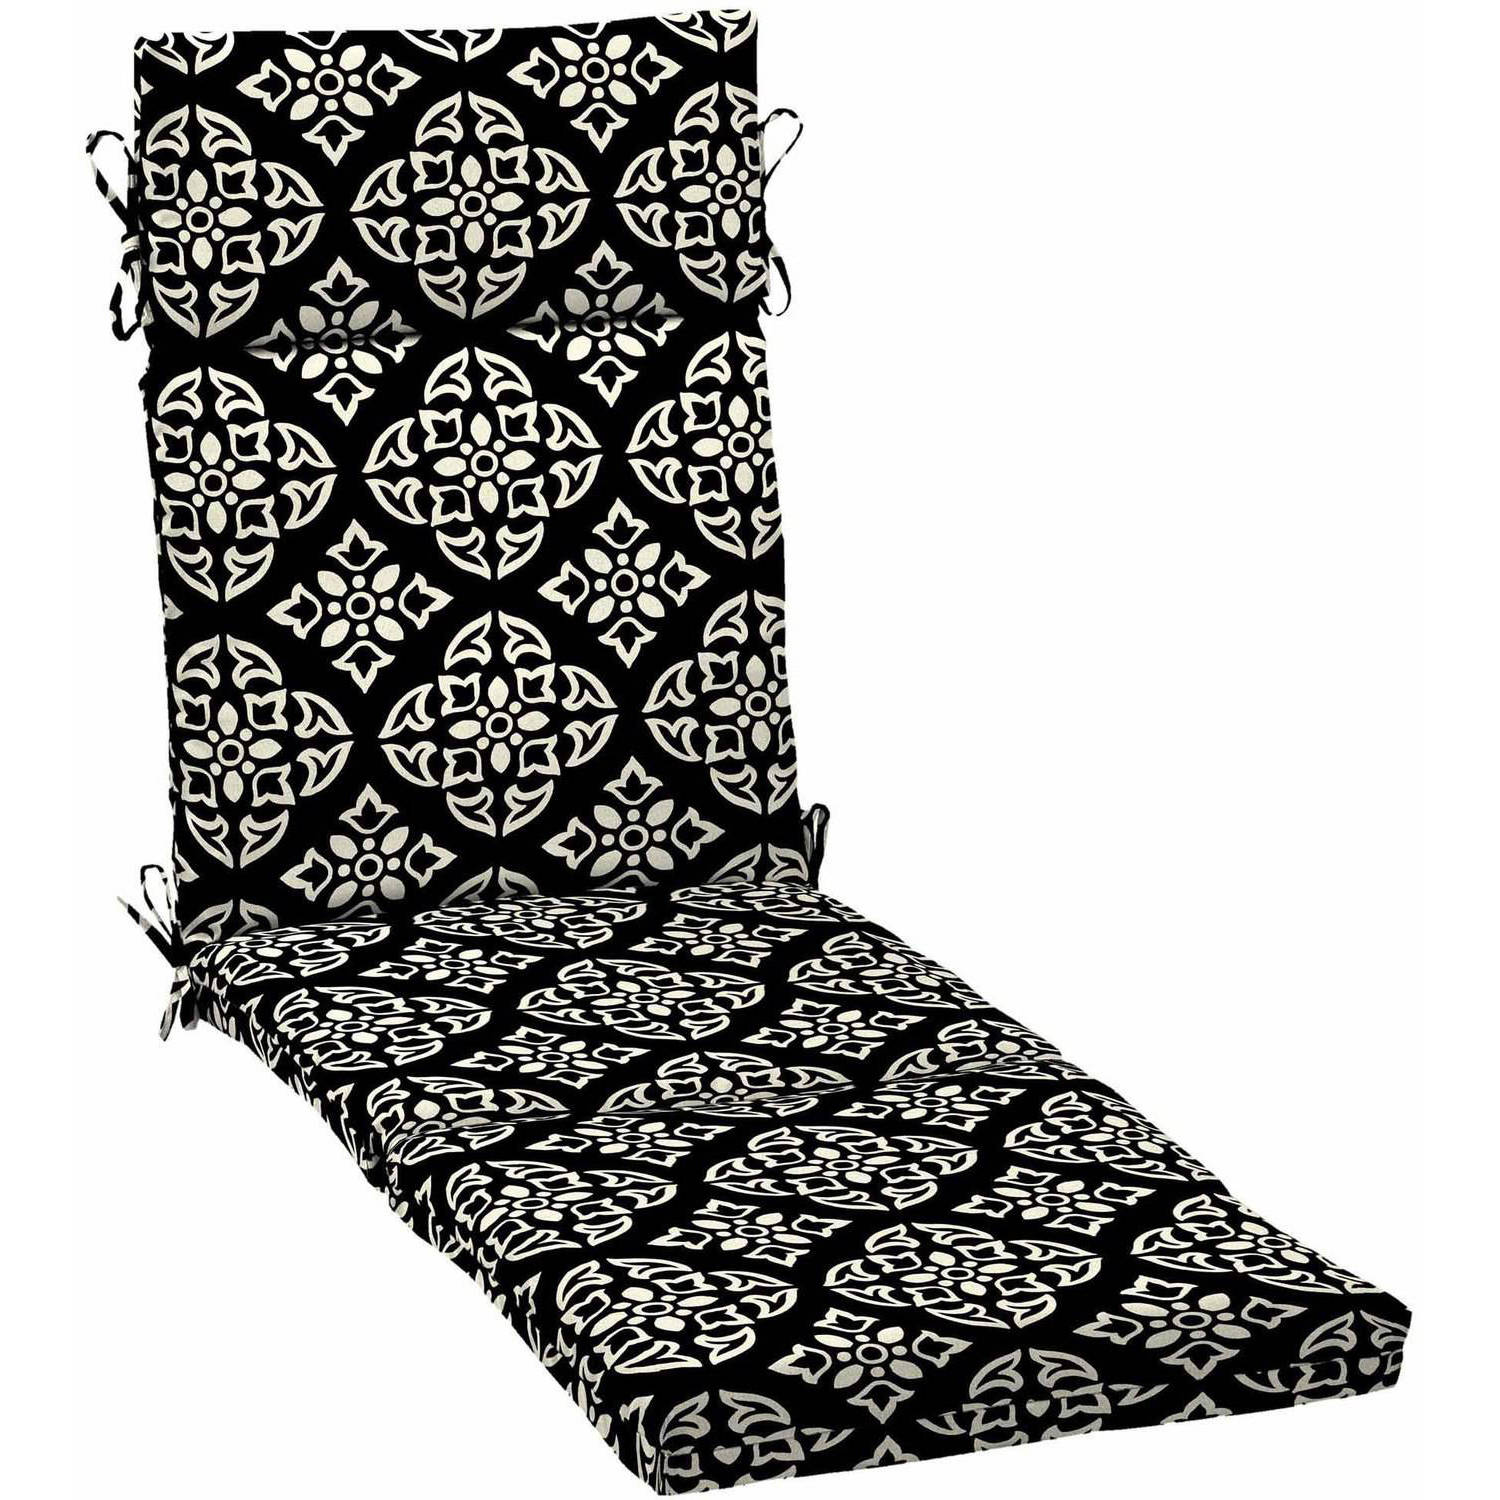 Better Homes and Gardens Outdoor Patio Chaise Lounge Cushion, Black White Medallion